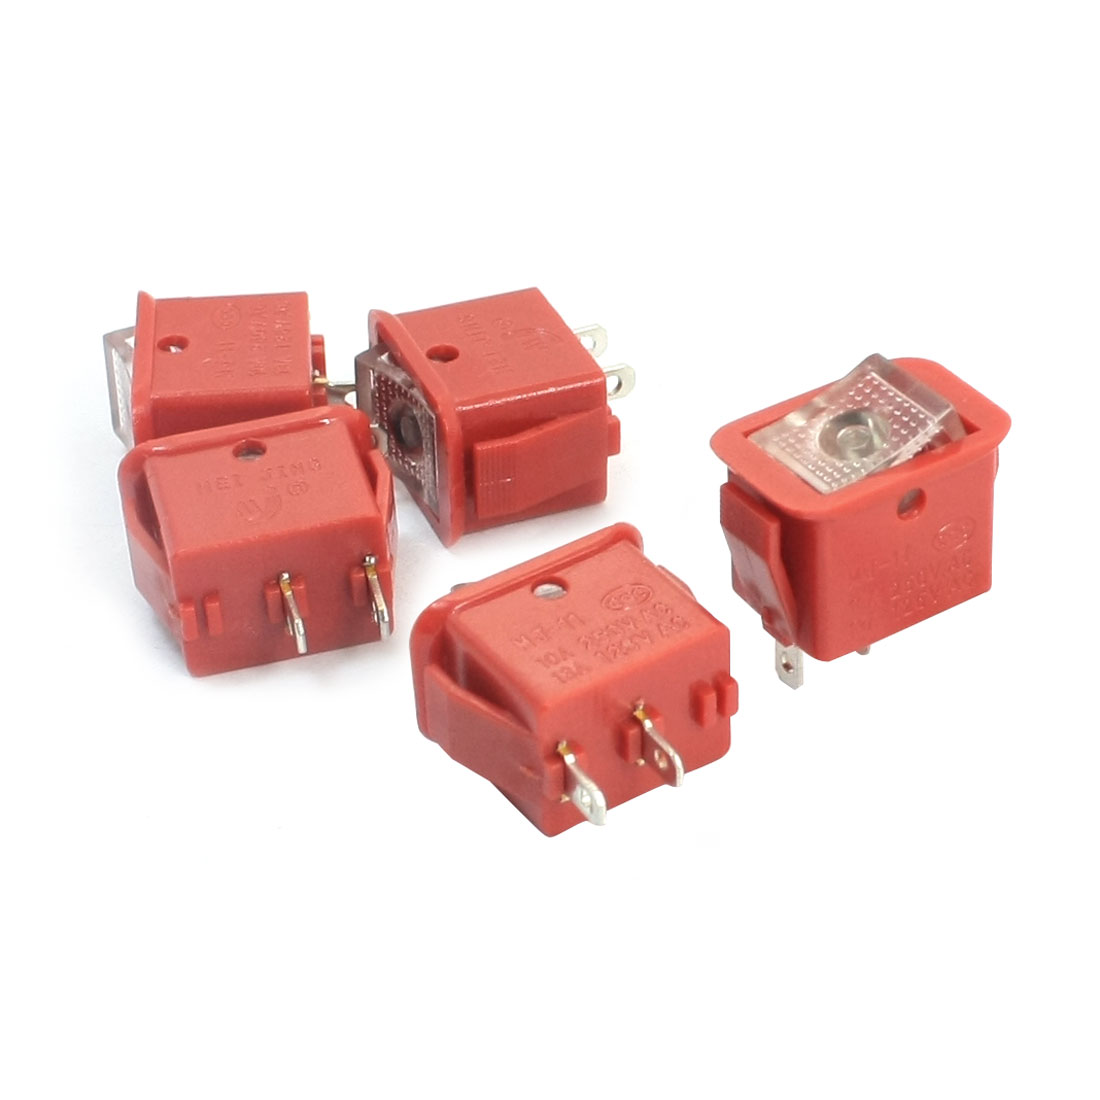 5pcs Red Latching SPST 2 Positions Rocker Switch AC250V/10A 125V/13A